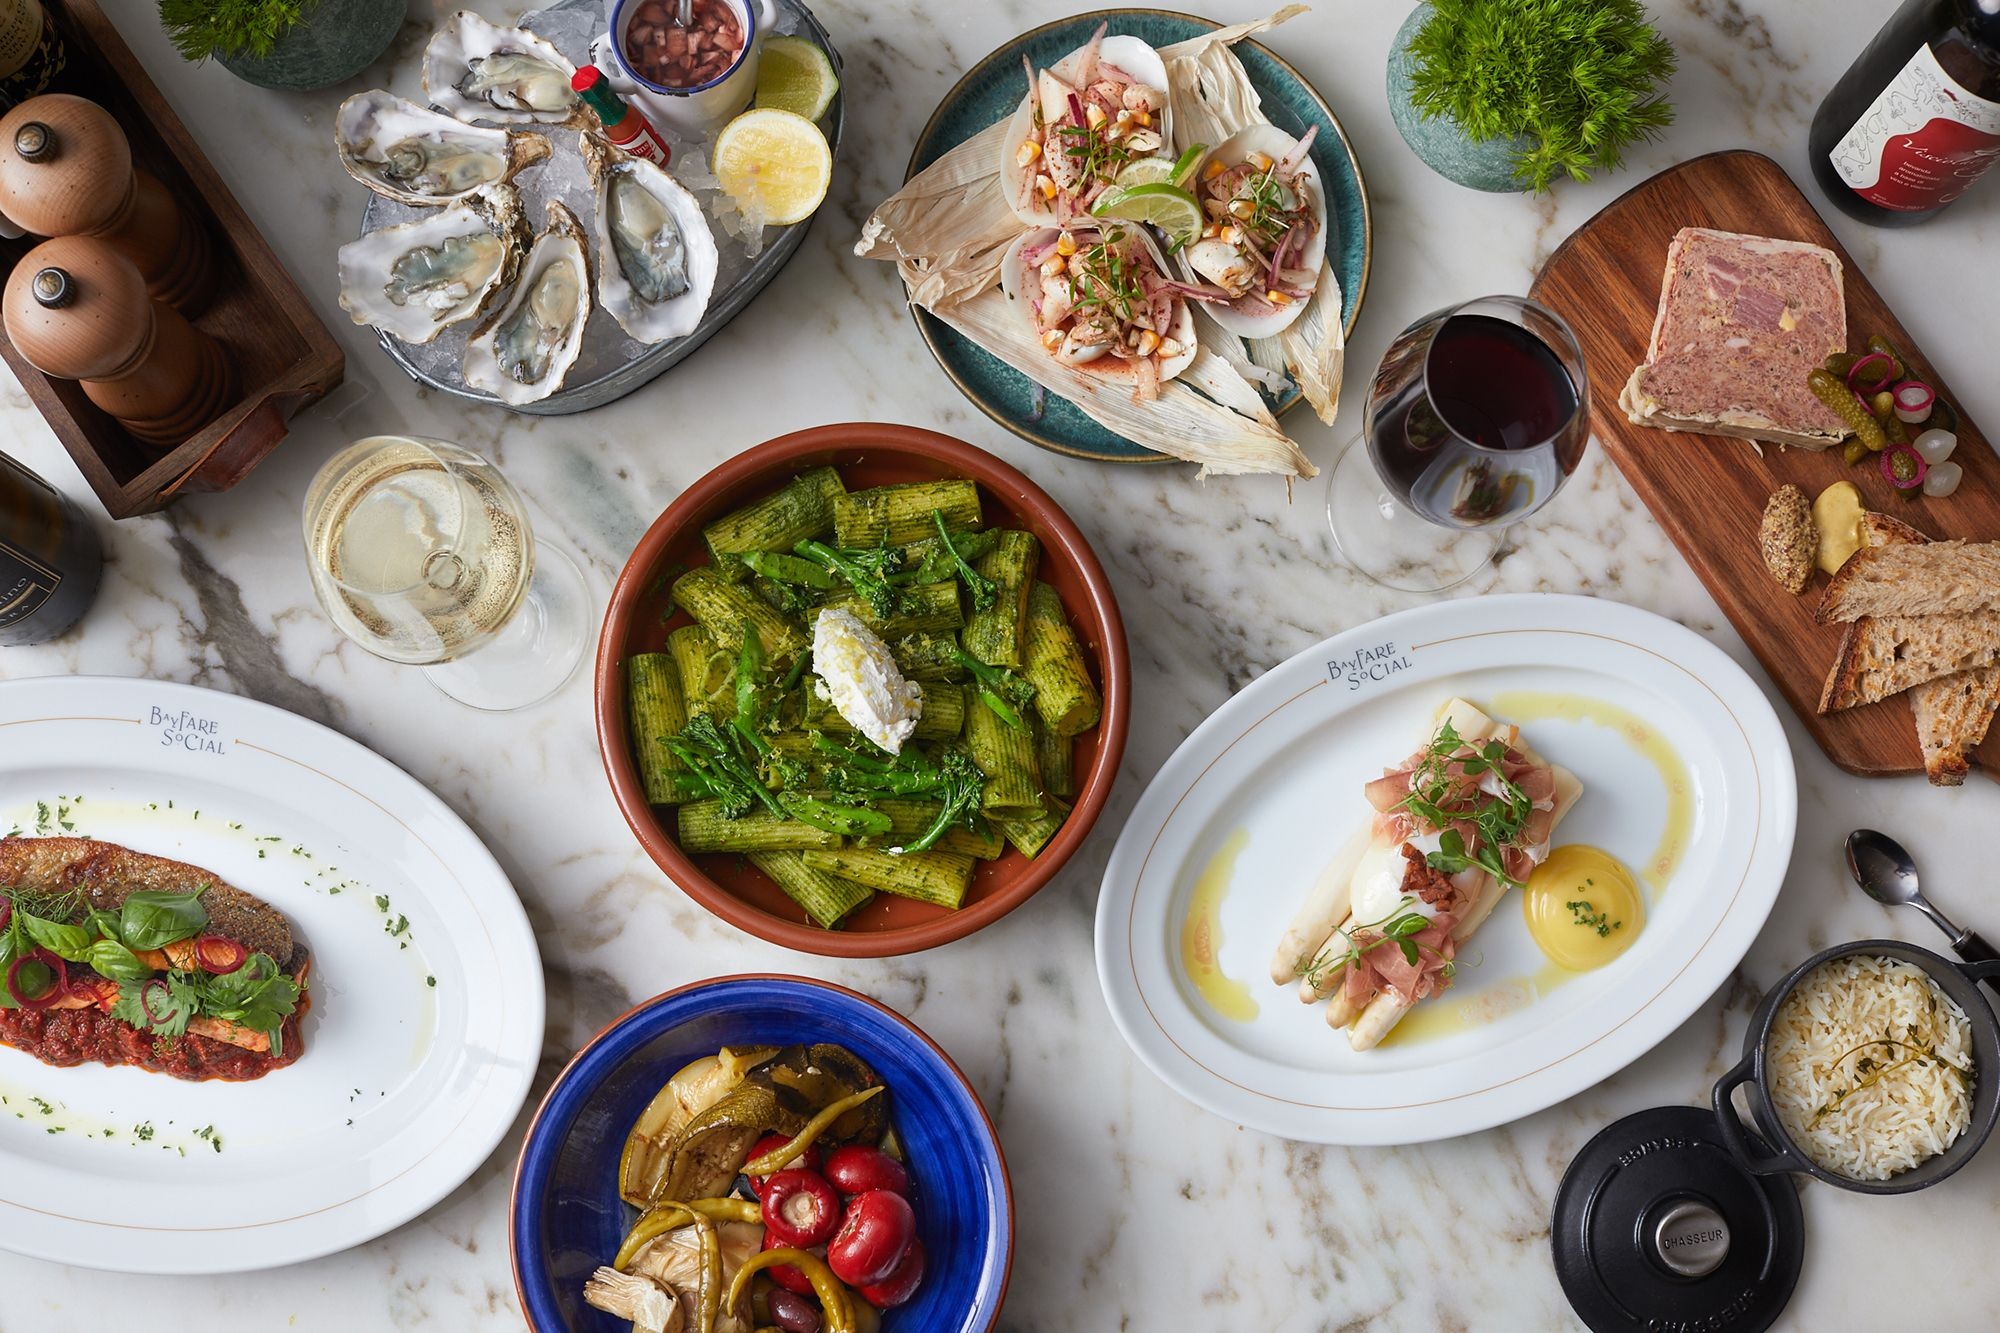 The Restaurants Our Editors Are Booking For Dinner Now That Restrictions Have Lifted